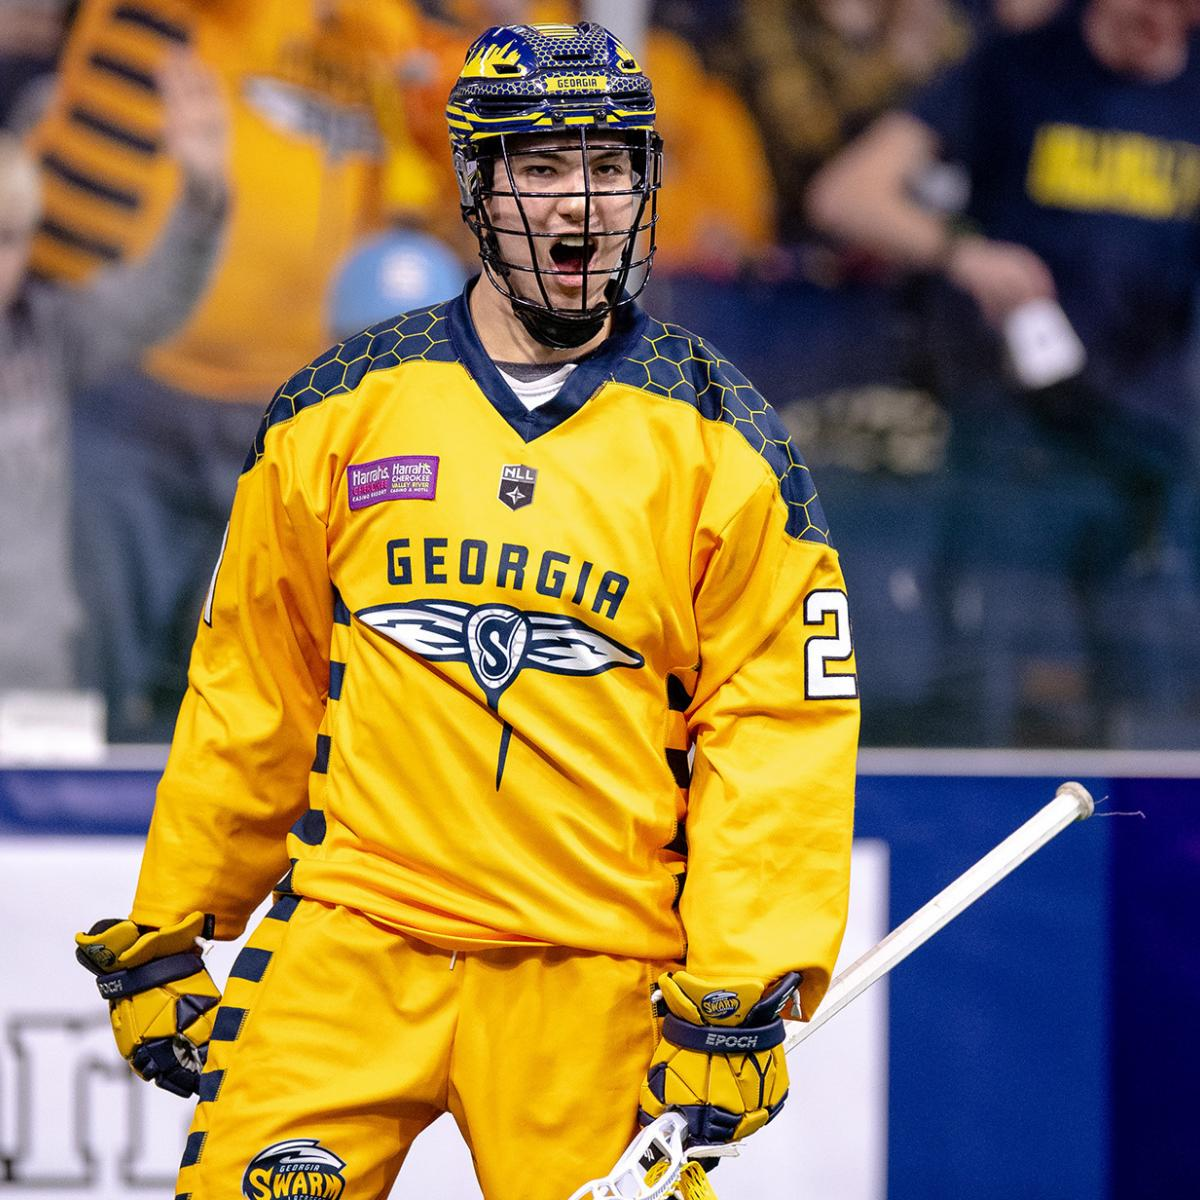 San Diego Lacrosse >> NLL: Schedule, How to Watch, Live Stream National Lacrosse League's Week 5 Games   Bleacher ...